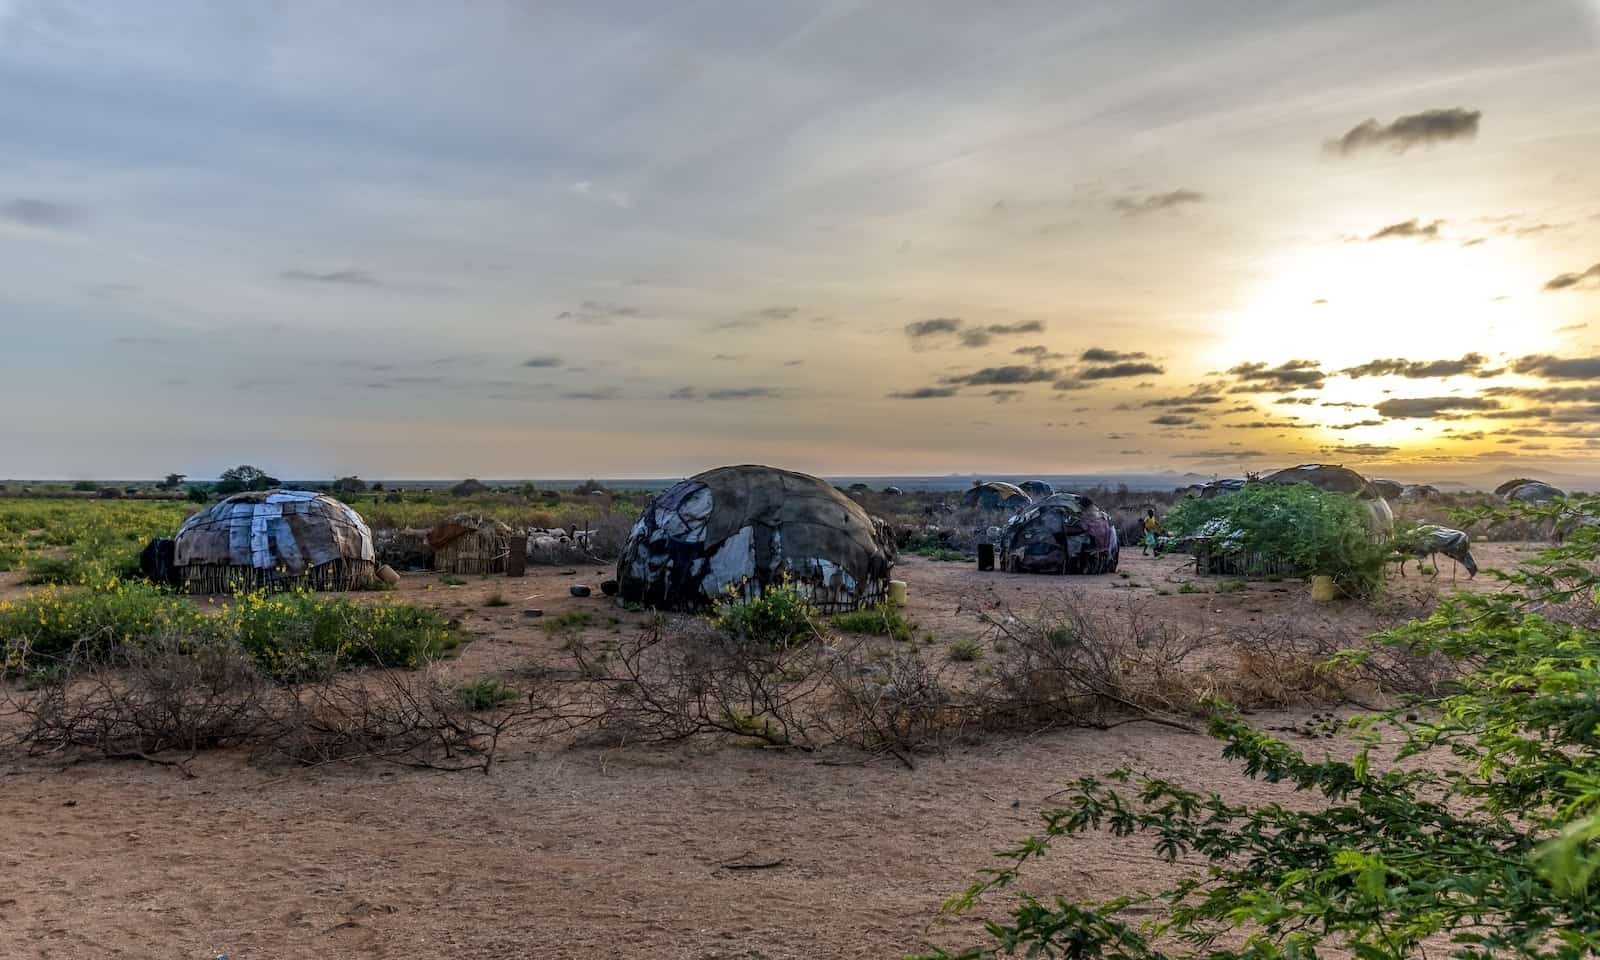 Five small rounded huts sit on a large plain with dirt and some green foliage as the sun rises.